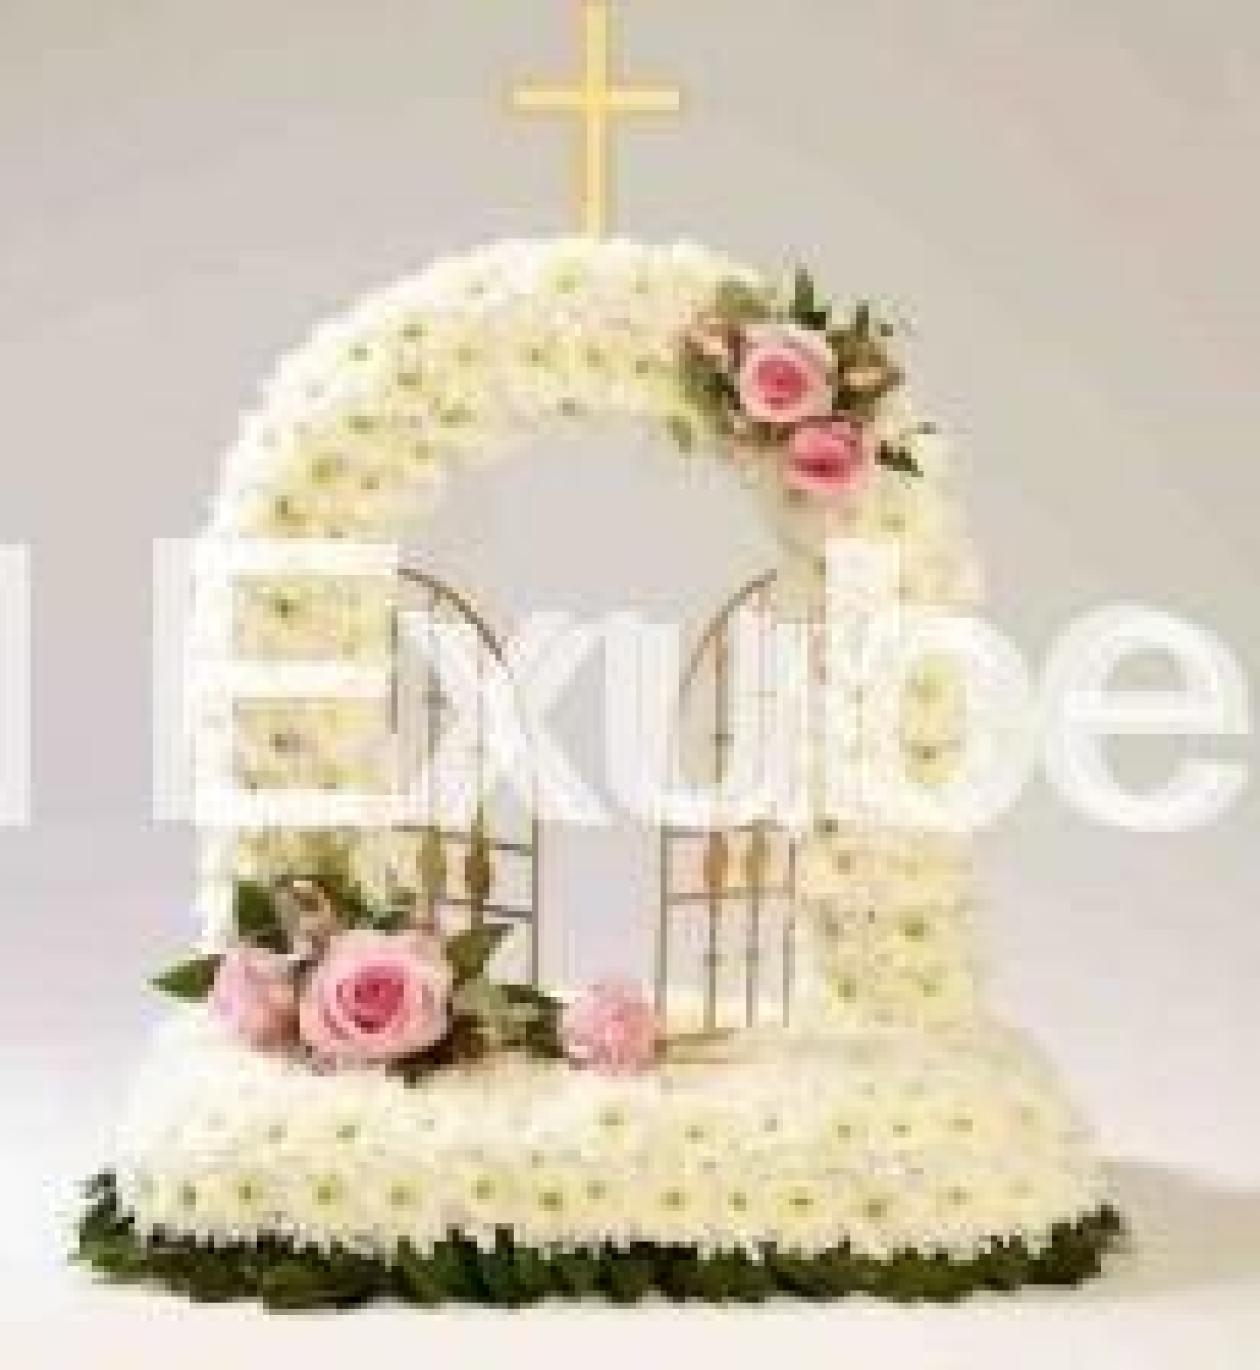 Funeral flowers gates of heaven floral exuberance funeral flowers gates of heaven izmirmasajfo Choice Image